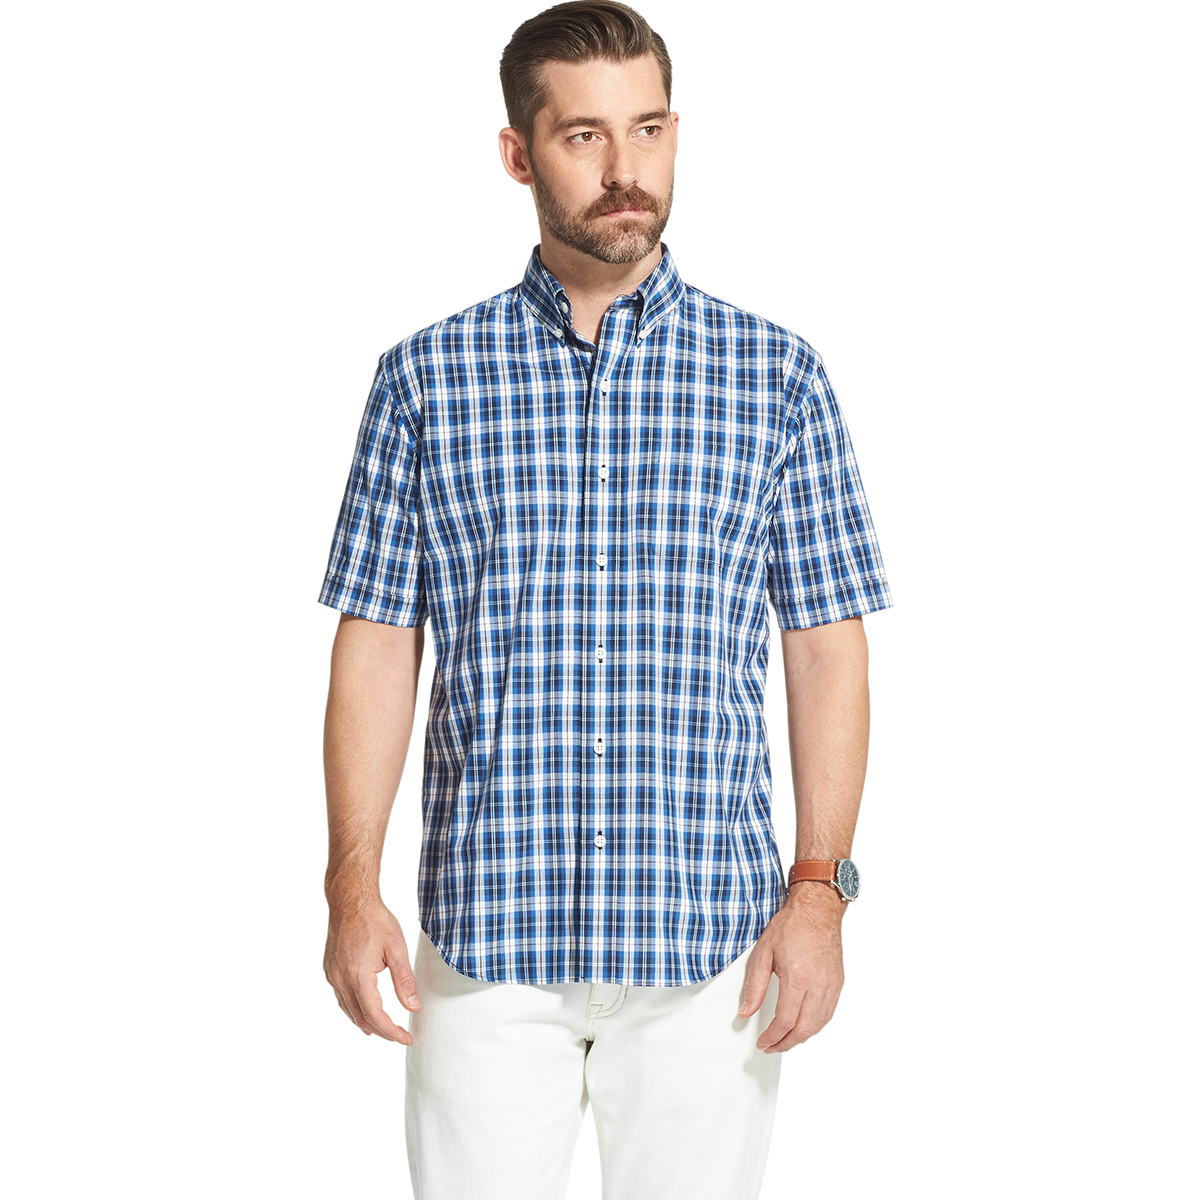 Arrow Men's Hamilton Short-Sleeve Poplin Plaid Button Down Shirt - Blue, XL